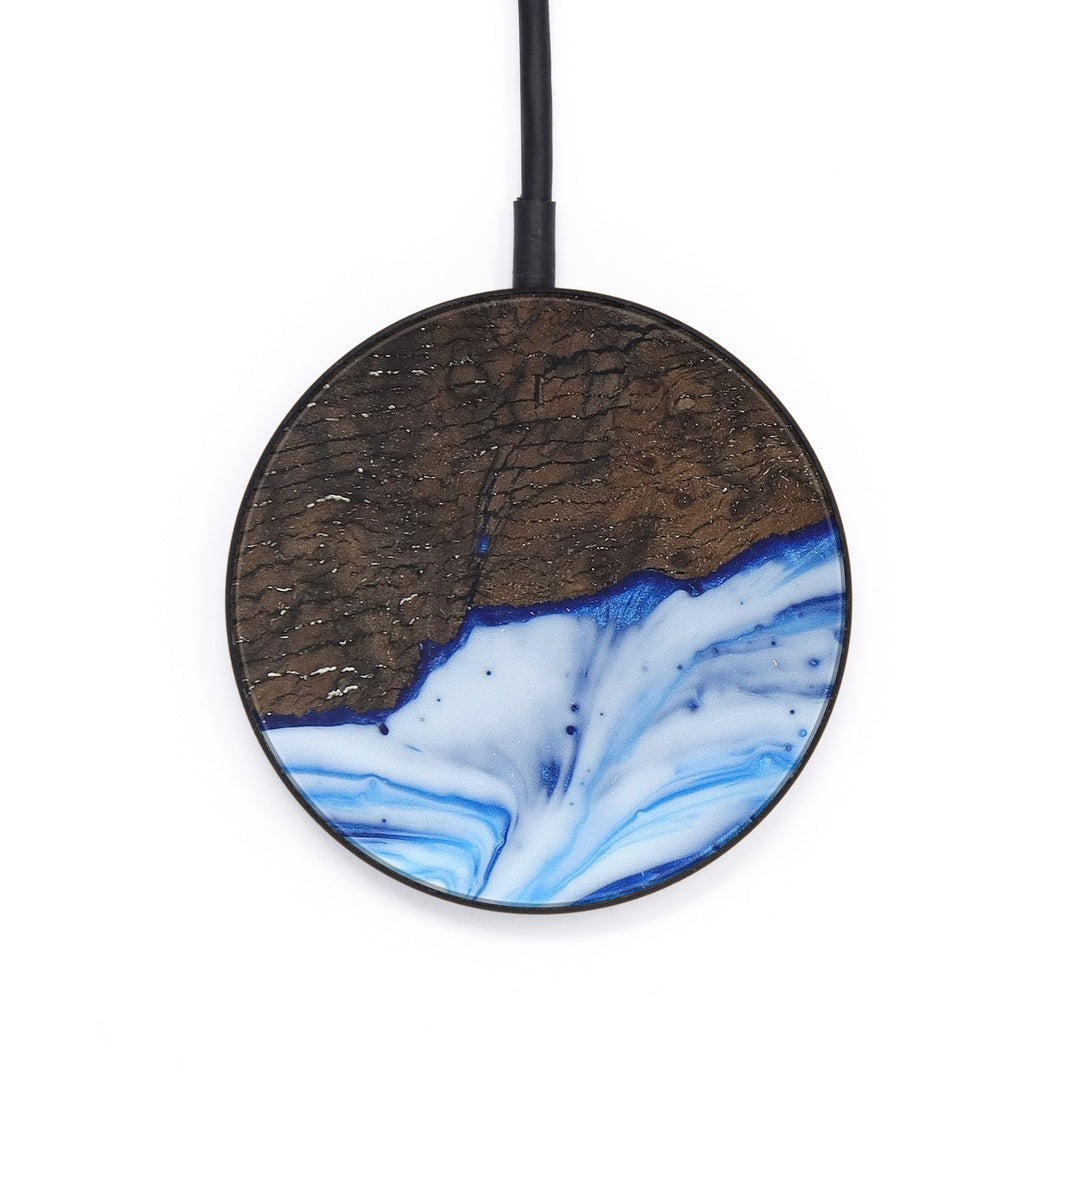 Circle Wood+Resin Wireless Charger - Barbie (Light Blue, 393671)